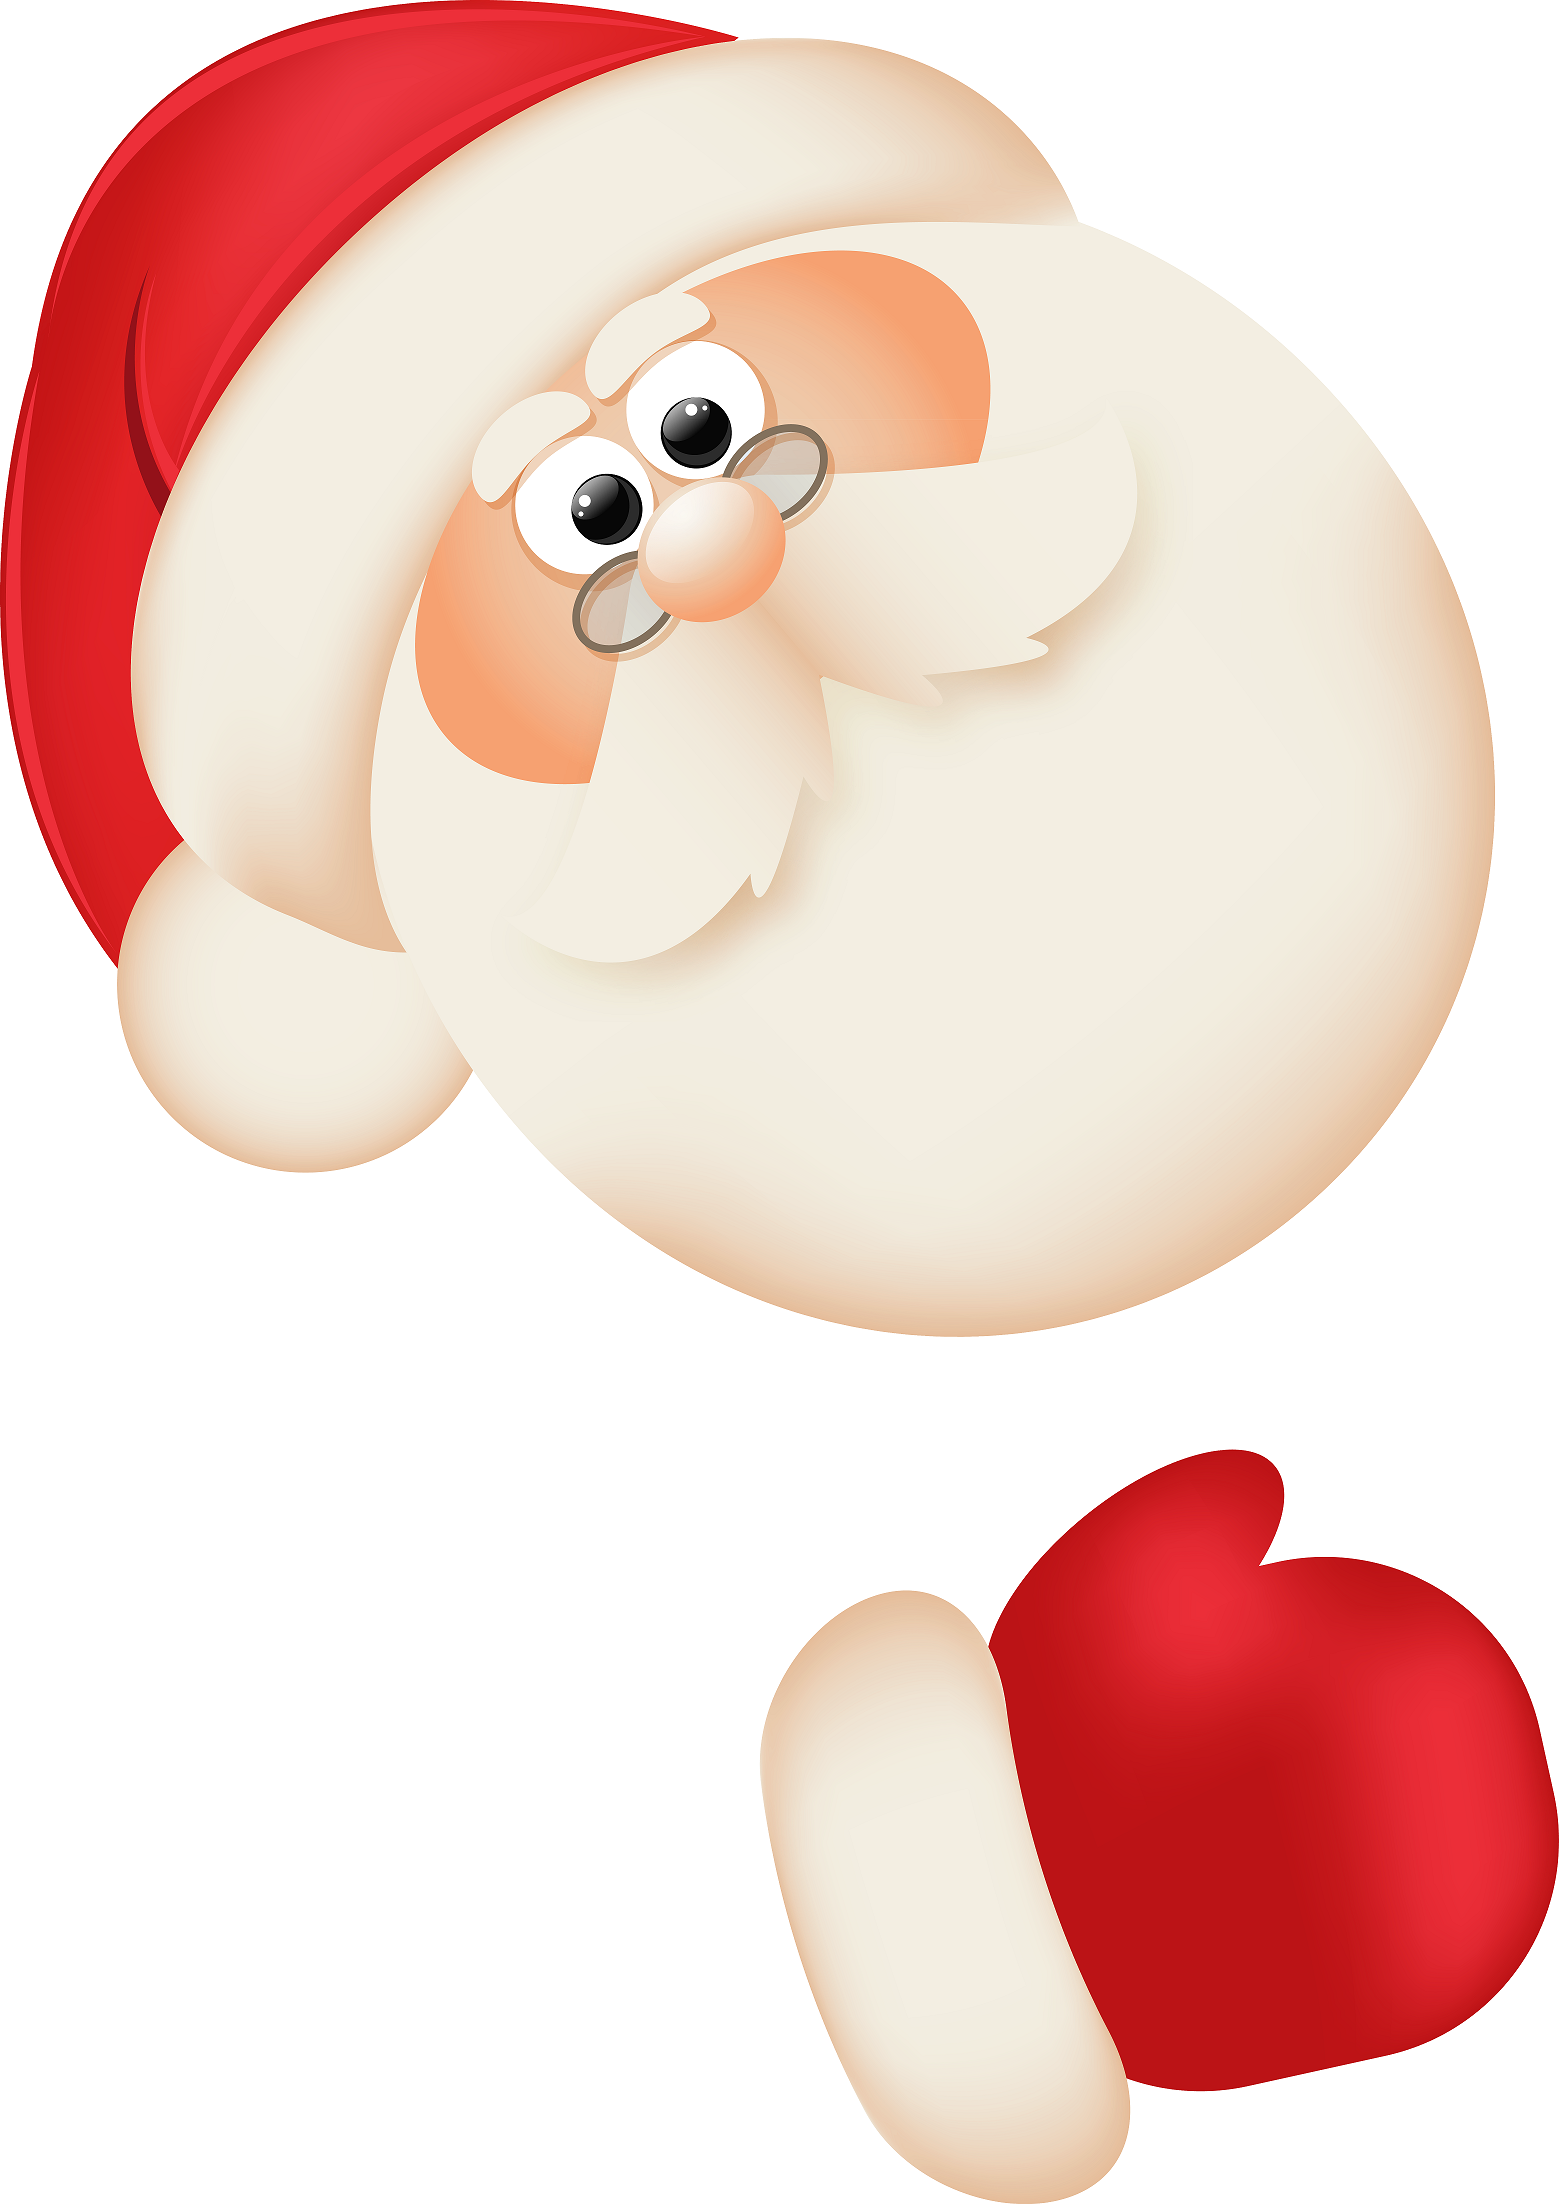 santa claus clip art clip art holiday scrapbook cards images etc rh pinterest com santa claus clip art borders santa claus clipart free